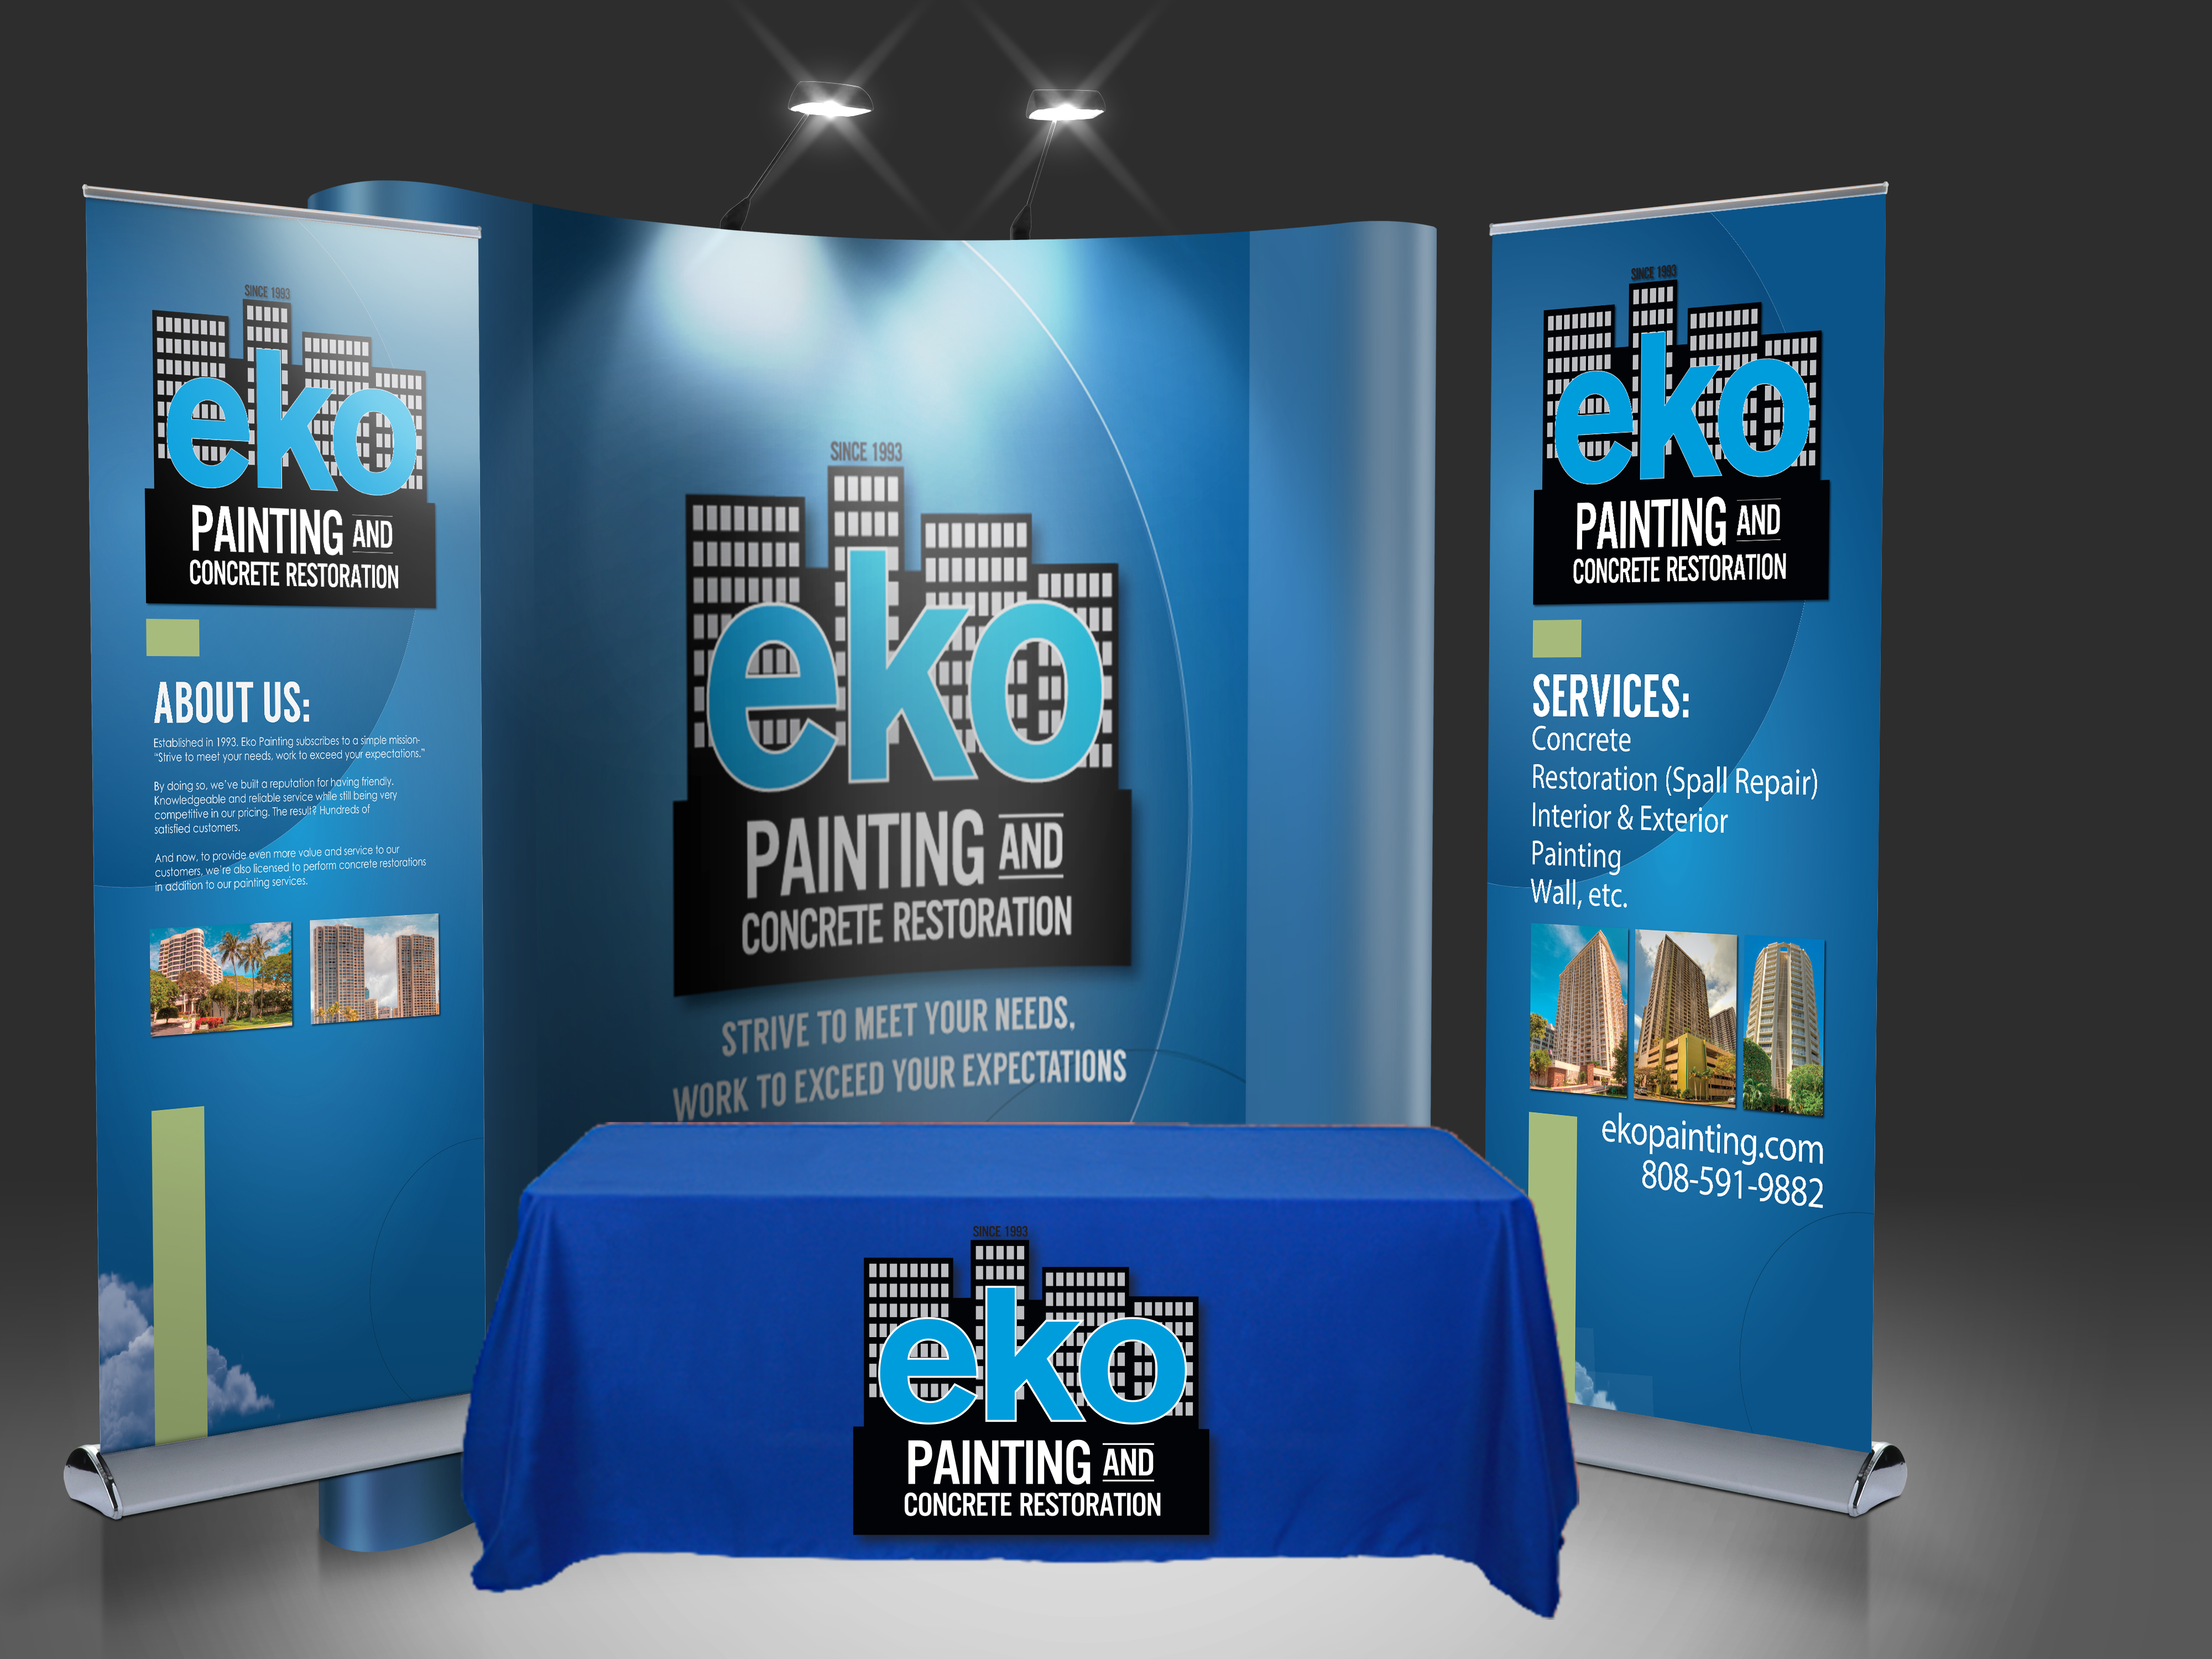 Trade Show Booth Graphic Design : Eko painting trade show booth u2013 hawaii graphic design